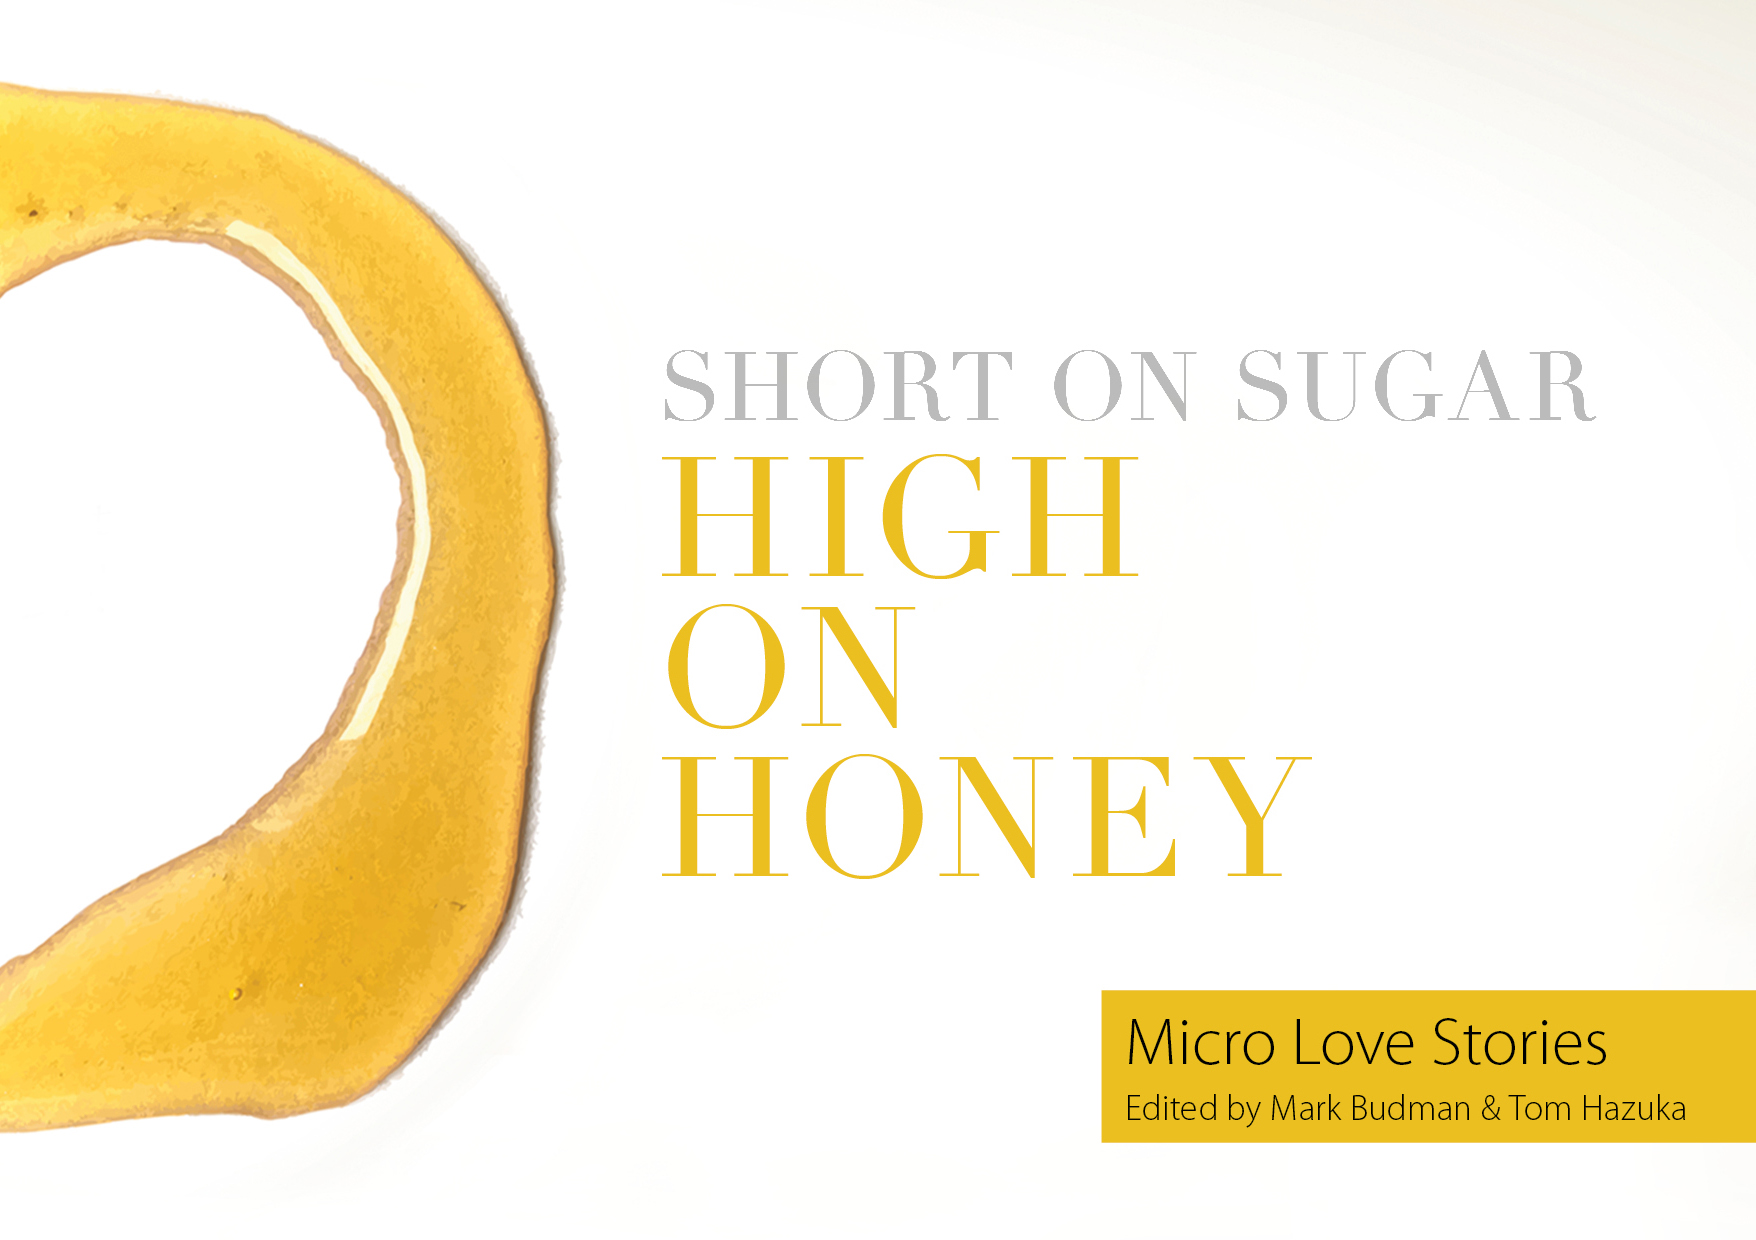 Short on Sugar, High on Honey: Micro Love Stories, edited by Mark Budman and Tom Hazuka (2018) 25% IFFA members Discount